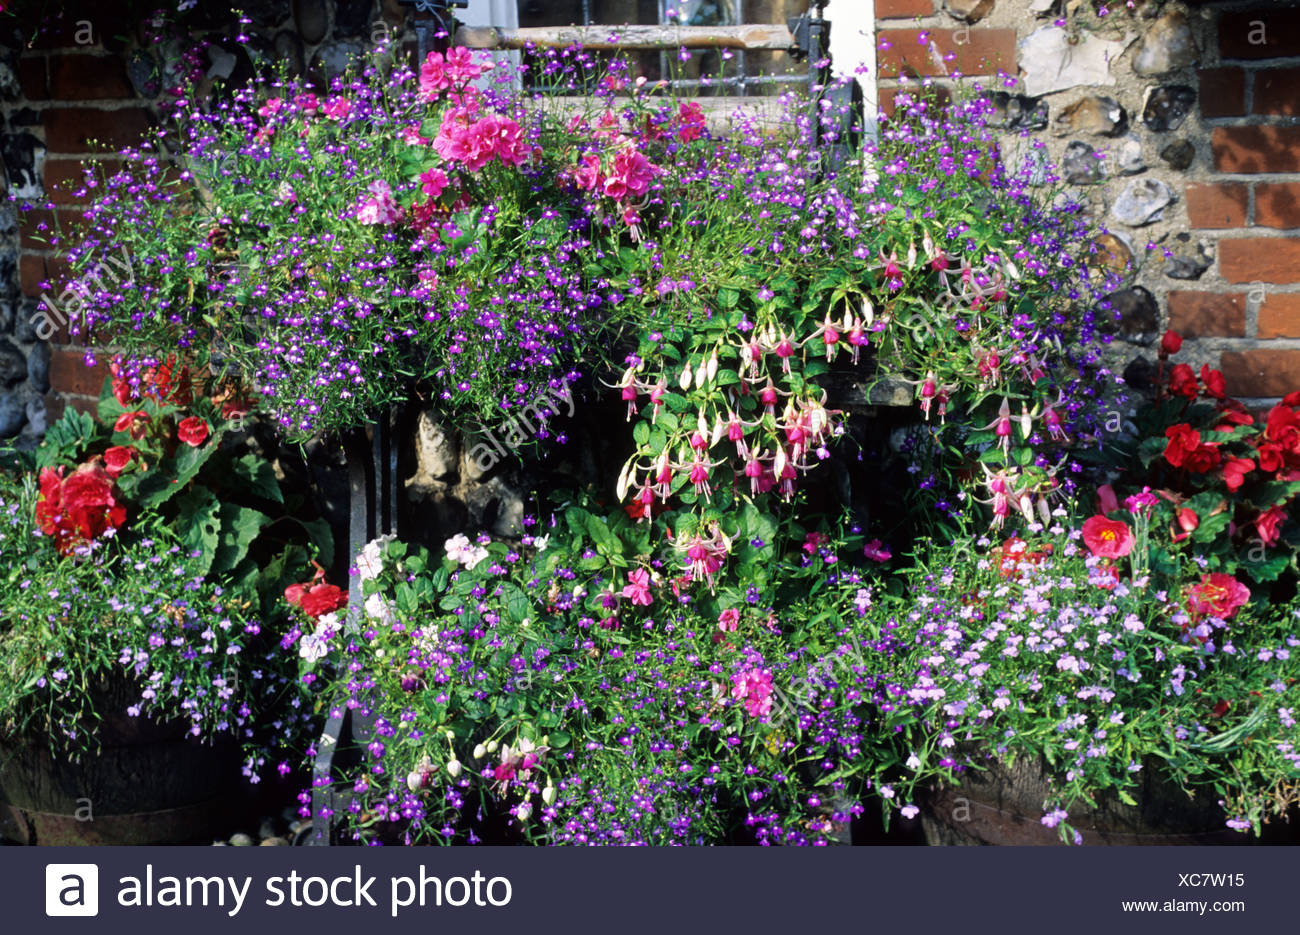 Container Plants, Fuchsia, Begonia, On Antique Mangle Stand , Pots, Planters,  Patio Garden